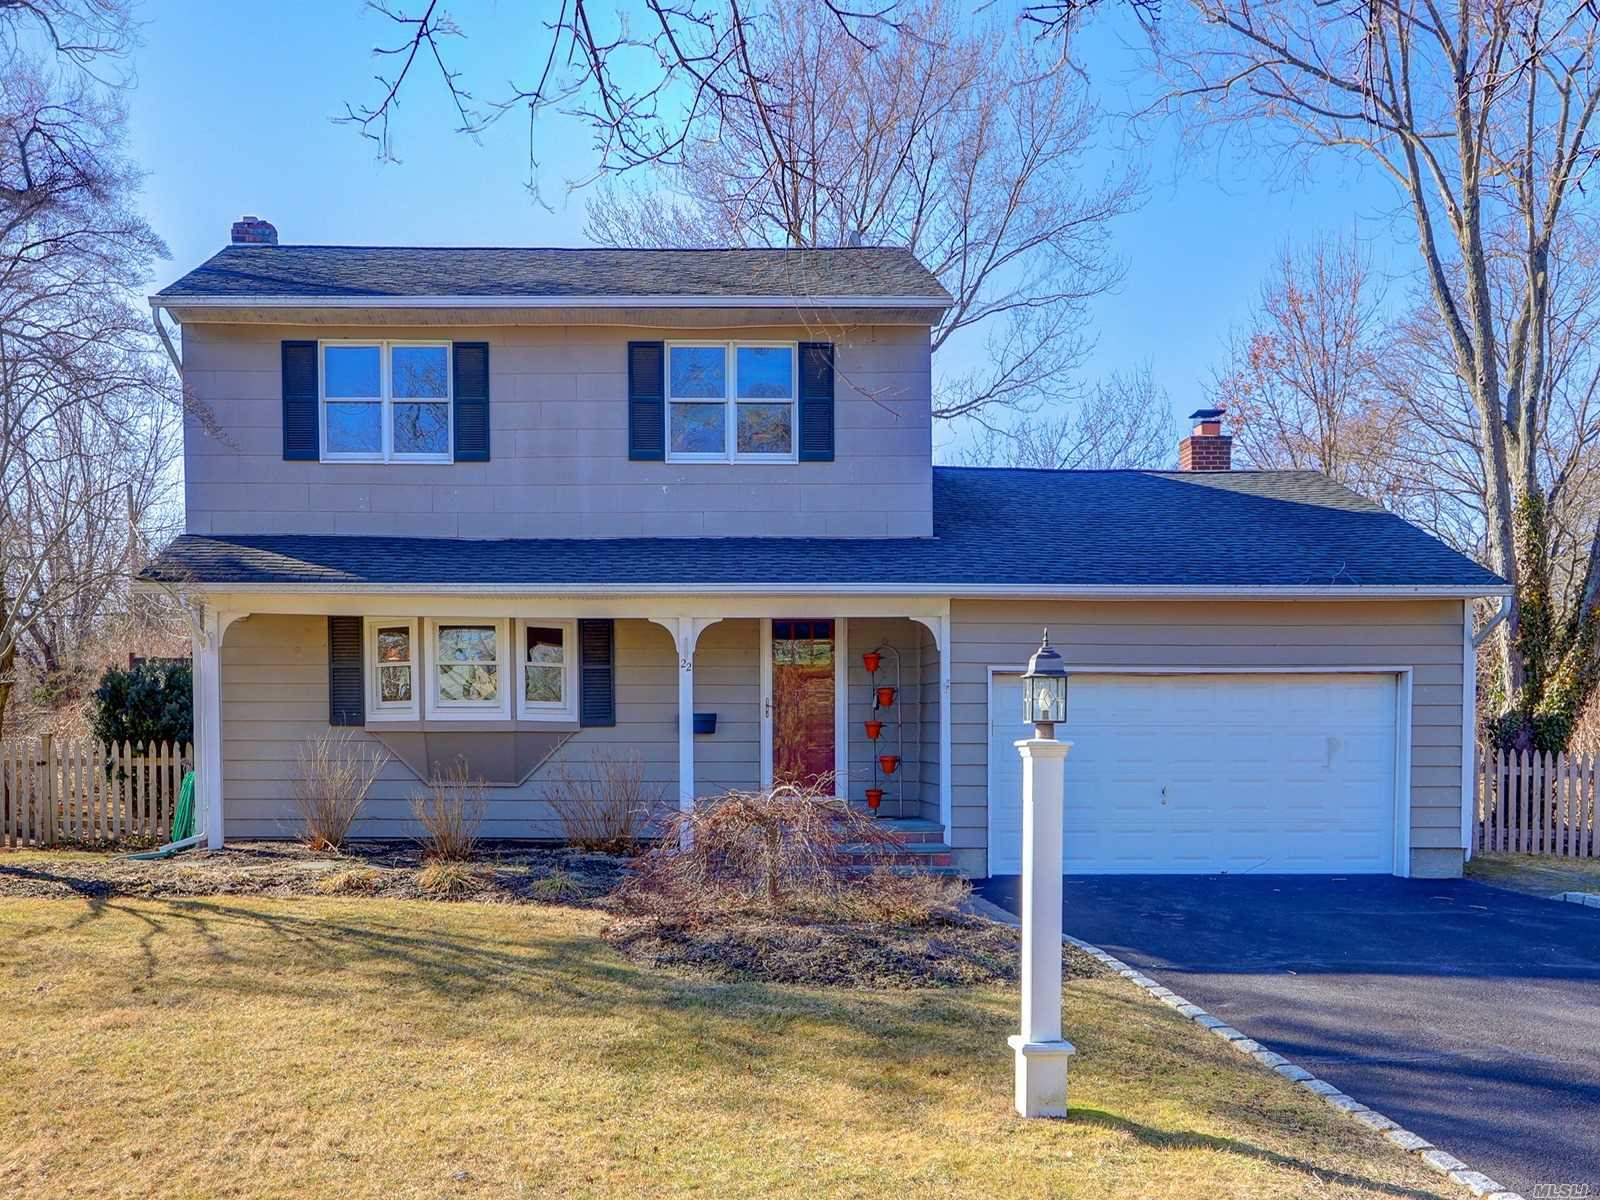 Come See This Wonderful Colonial Located In Commack Schools! Mid Blk Location Set On 1/2 Acre! This Home Has So Much To Offer, 3 Bedrooms, 2 Full Uptd Baths, Lge Uptd Eik, Liv/Dining Room.Family Rm W/Fp/Wood Stove Insert.F/Part Finished Basement.Sunroom Which Overlooks Beautiful Backyard W/Inground Pool And Deck. Gas Heat/Cooking, Hd Wd Floors, Cvac, Ing Sprinklers.Att 2 1/2 Car Garage..Close To Shopping, Schools, Train Stations, Major Roads. Indian Hollow Elem, Burr Interm. Schools!